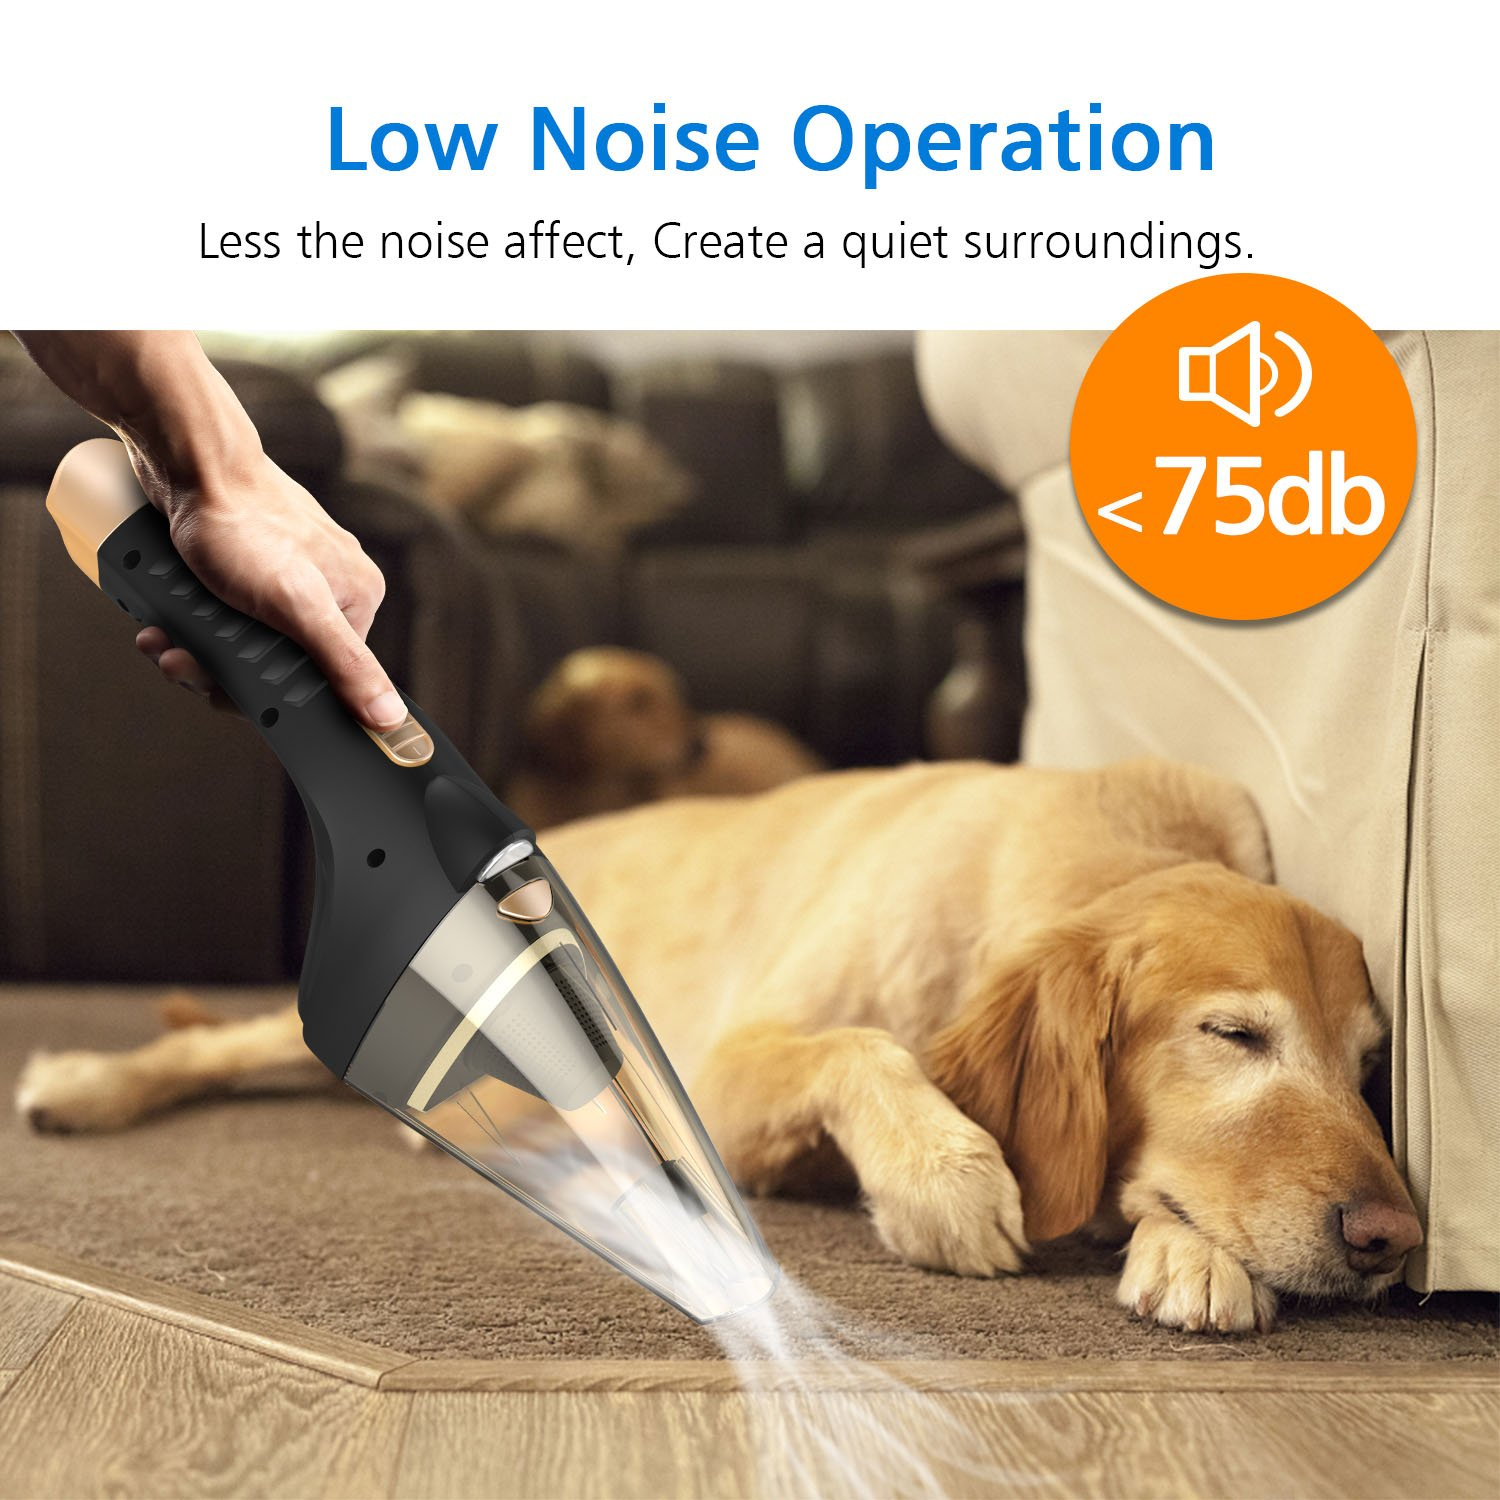 Hard Hose SONRU Car Vacuum Cleaner Brush Carry Bag SR11 Soft Tube DC 12V 106W Wet//Dry 4.0KPA Suction Powerful Handheld Vacuum Cleaner with 2 HEPA Filters LED Light